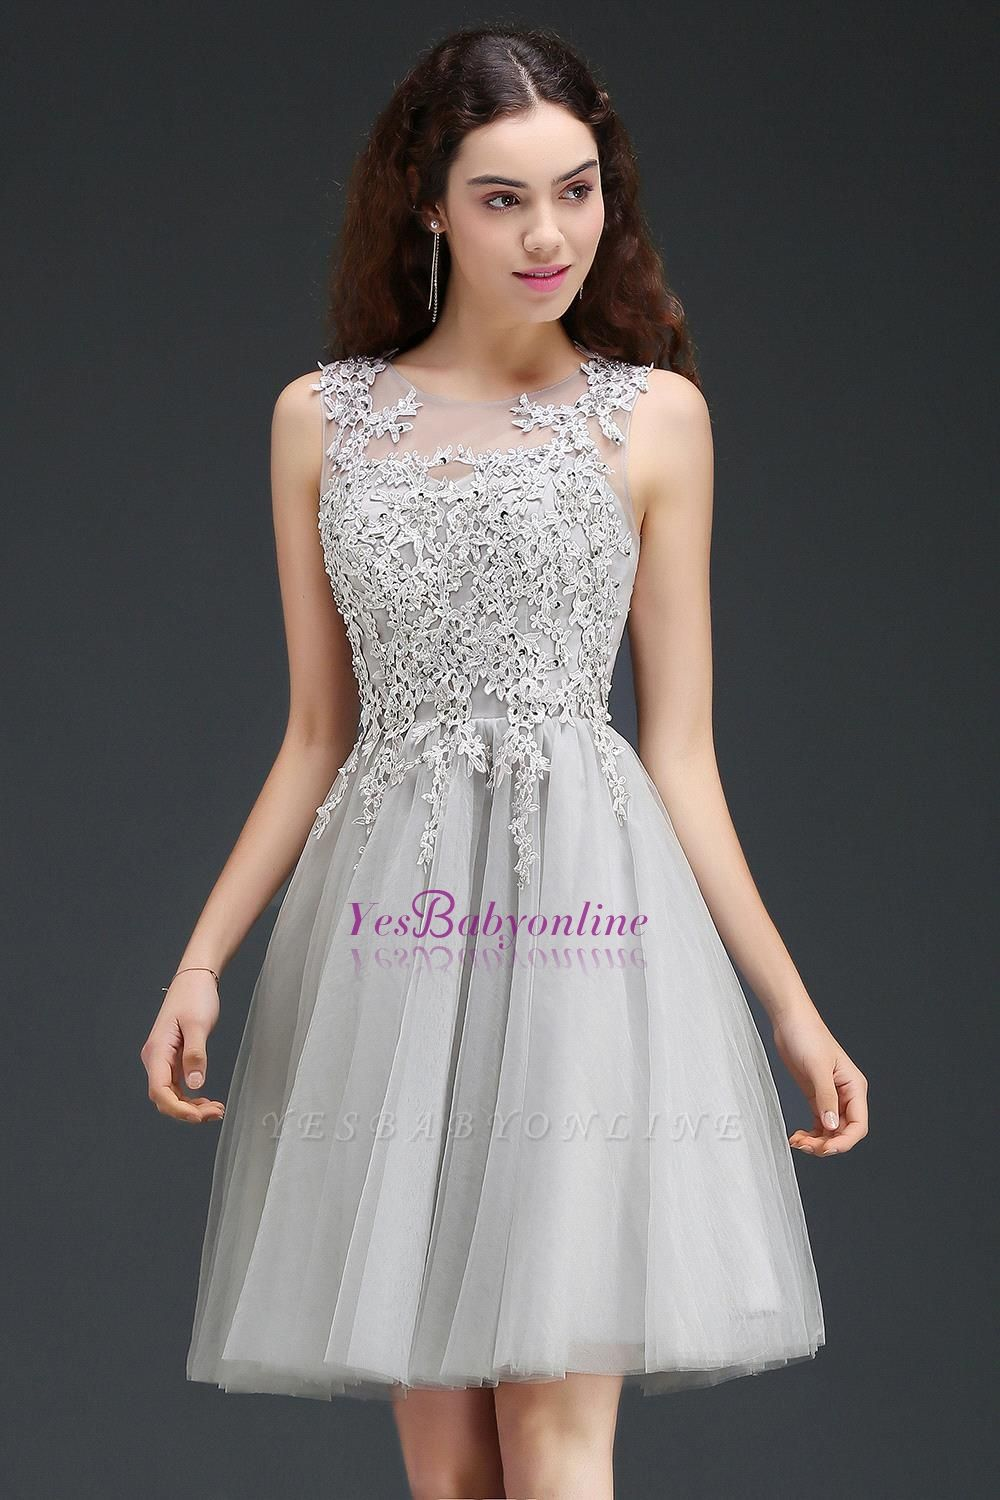 Lace Appliques Silver Jewel Sleeveless Short Homecoming Dress